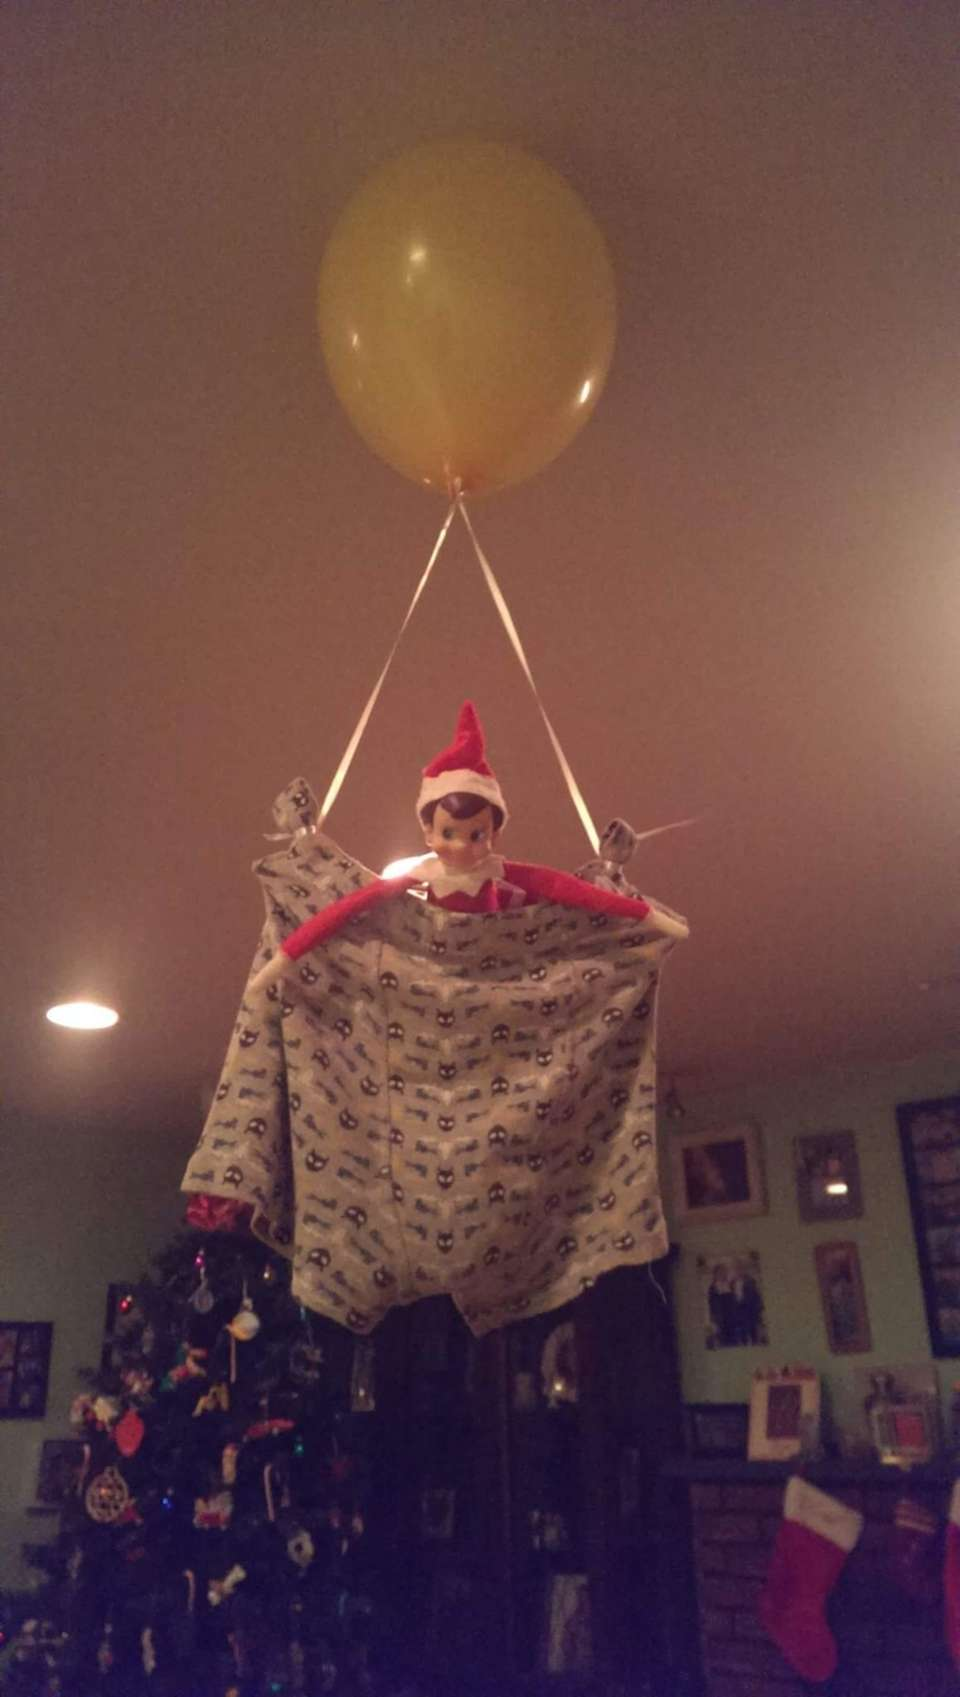 The most creative elf on the shelf ideas newsday for Elf on the shelf balloon ride